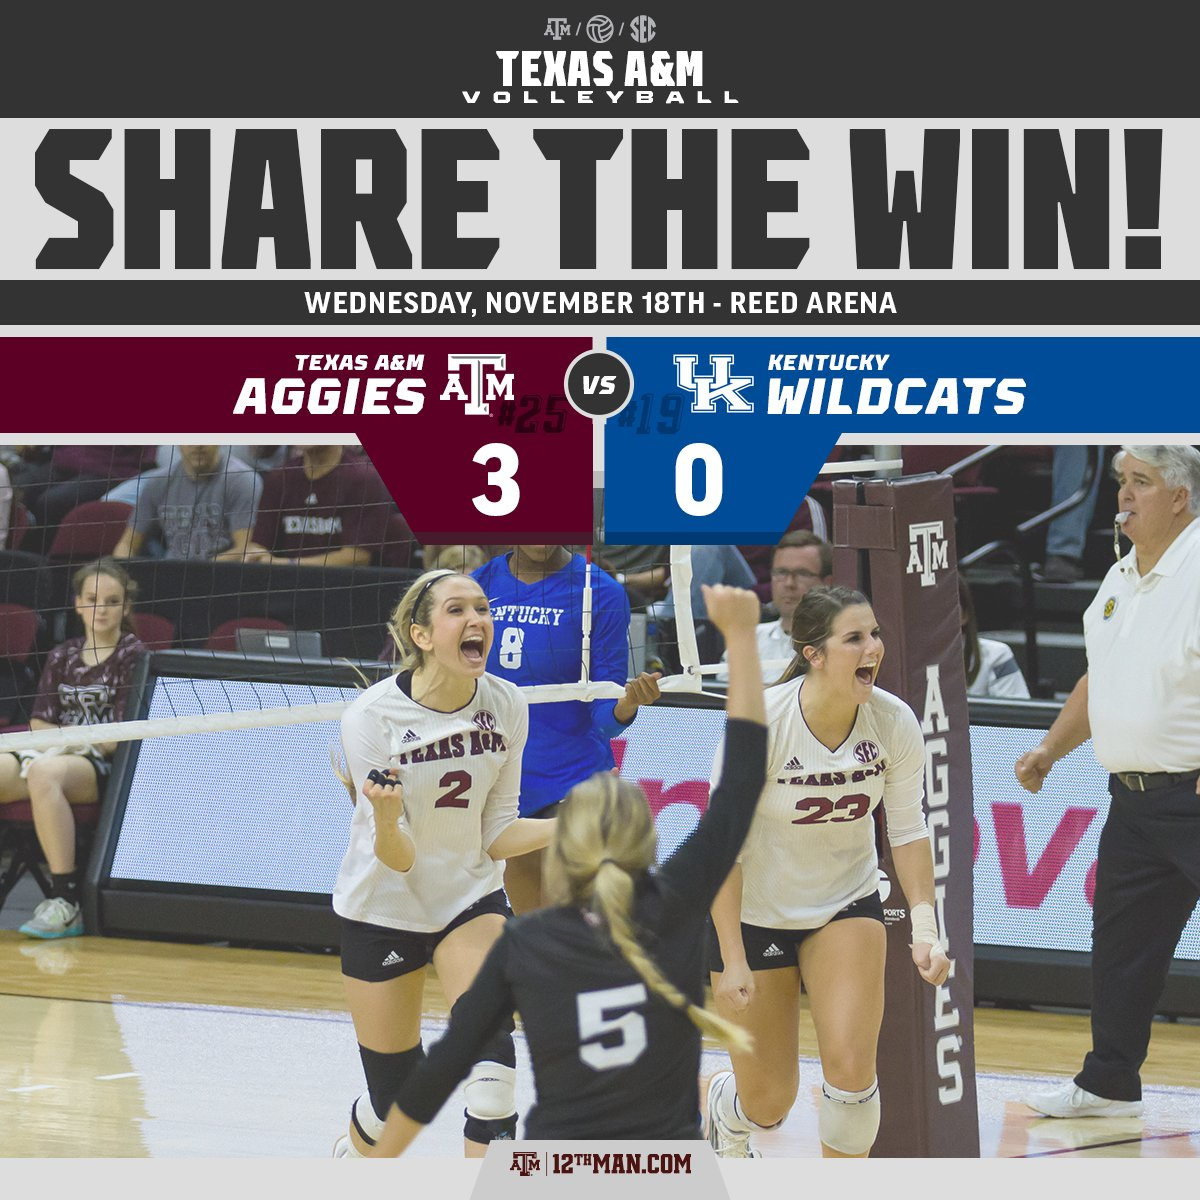 W-W-W-W-W-W-W-W-W-W-W, that's 11 straight wins for your Fighting Texas Aggies! #12thMan #RTtheWIN https://t.co/t4Dbo08N6b